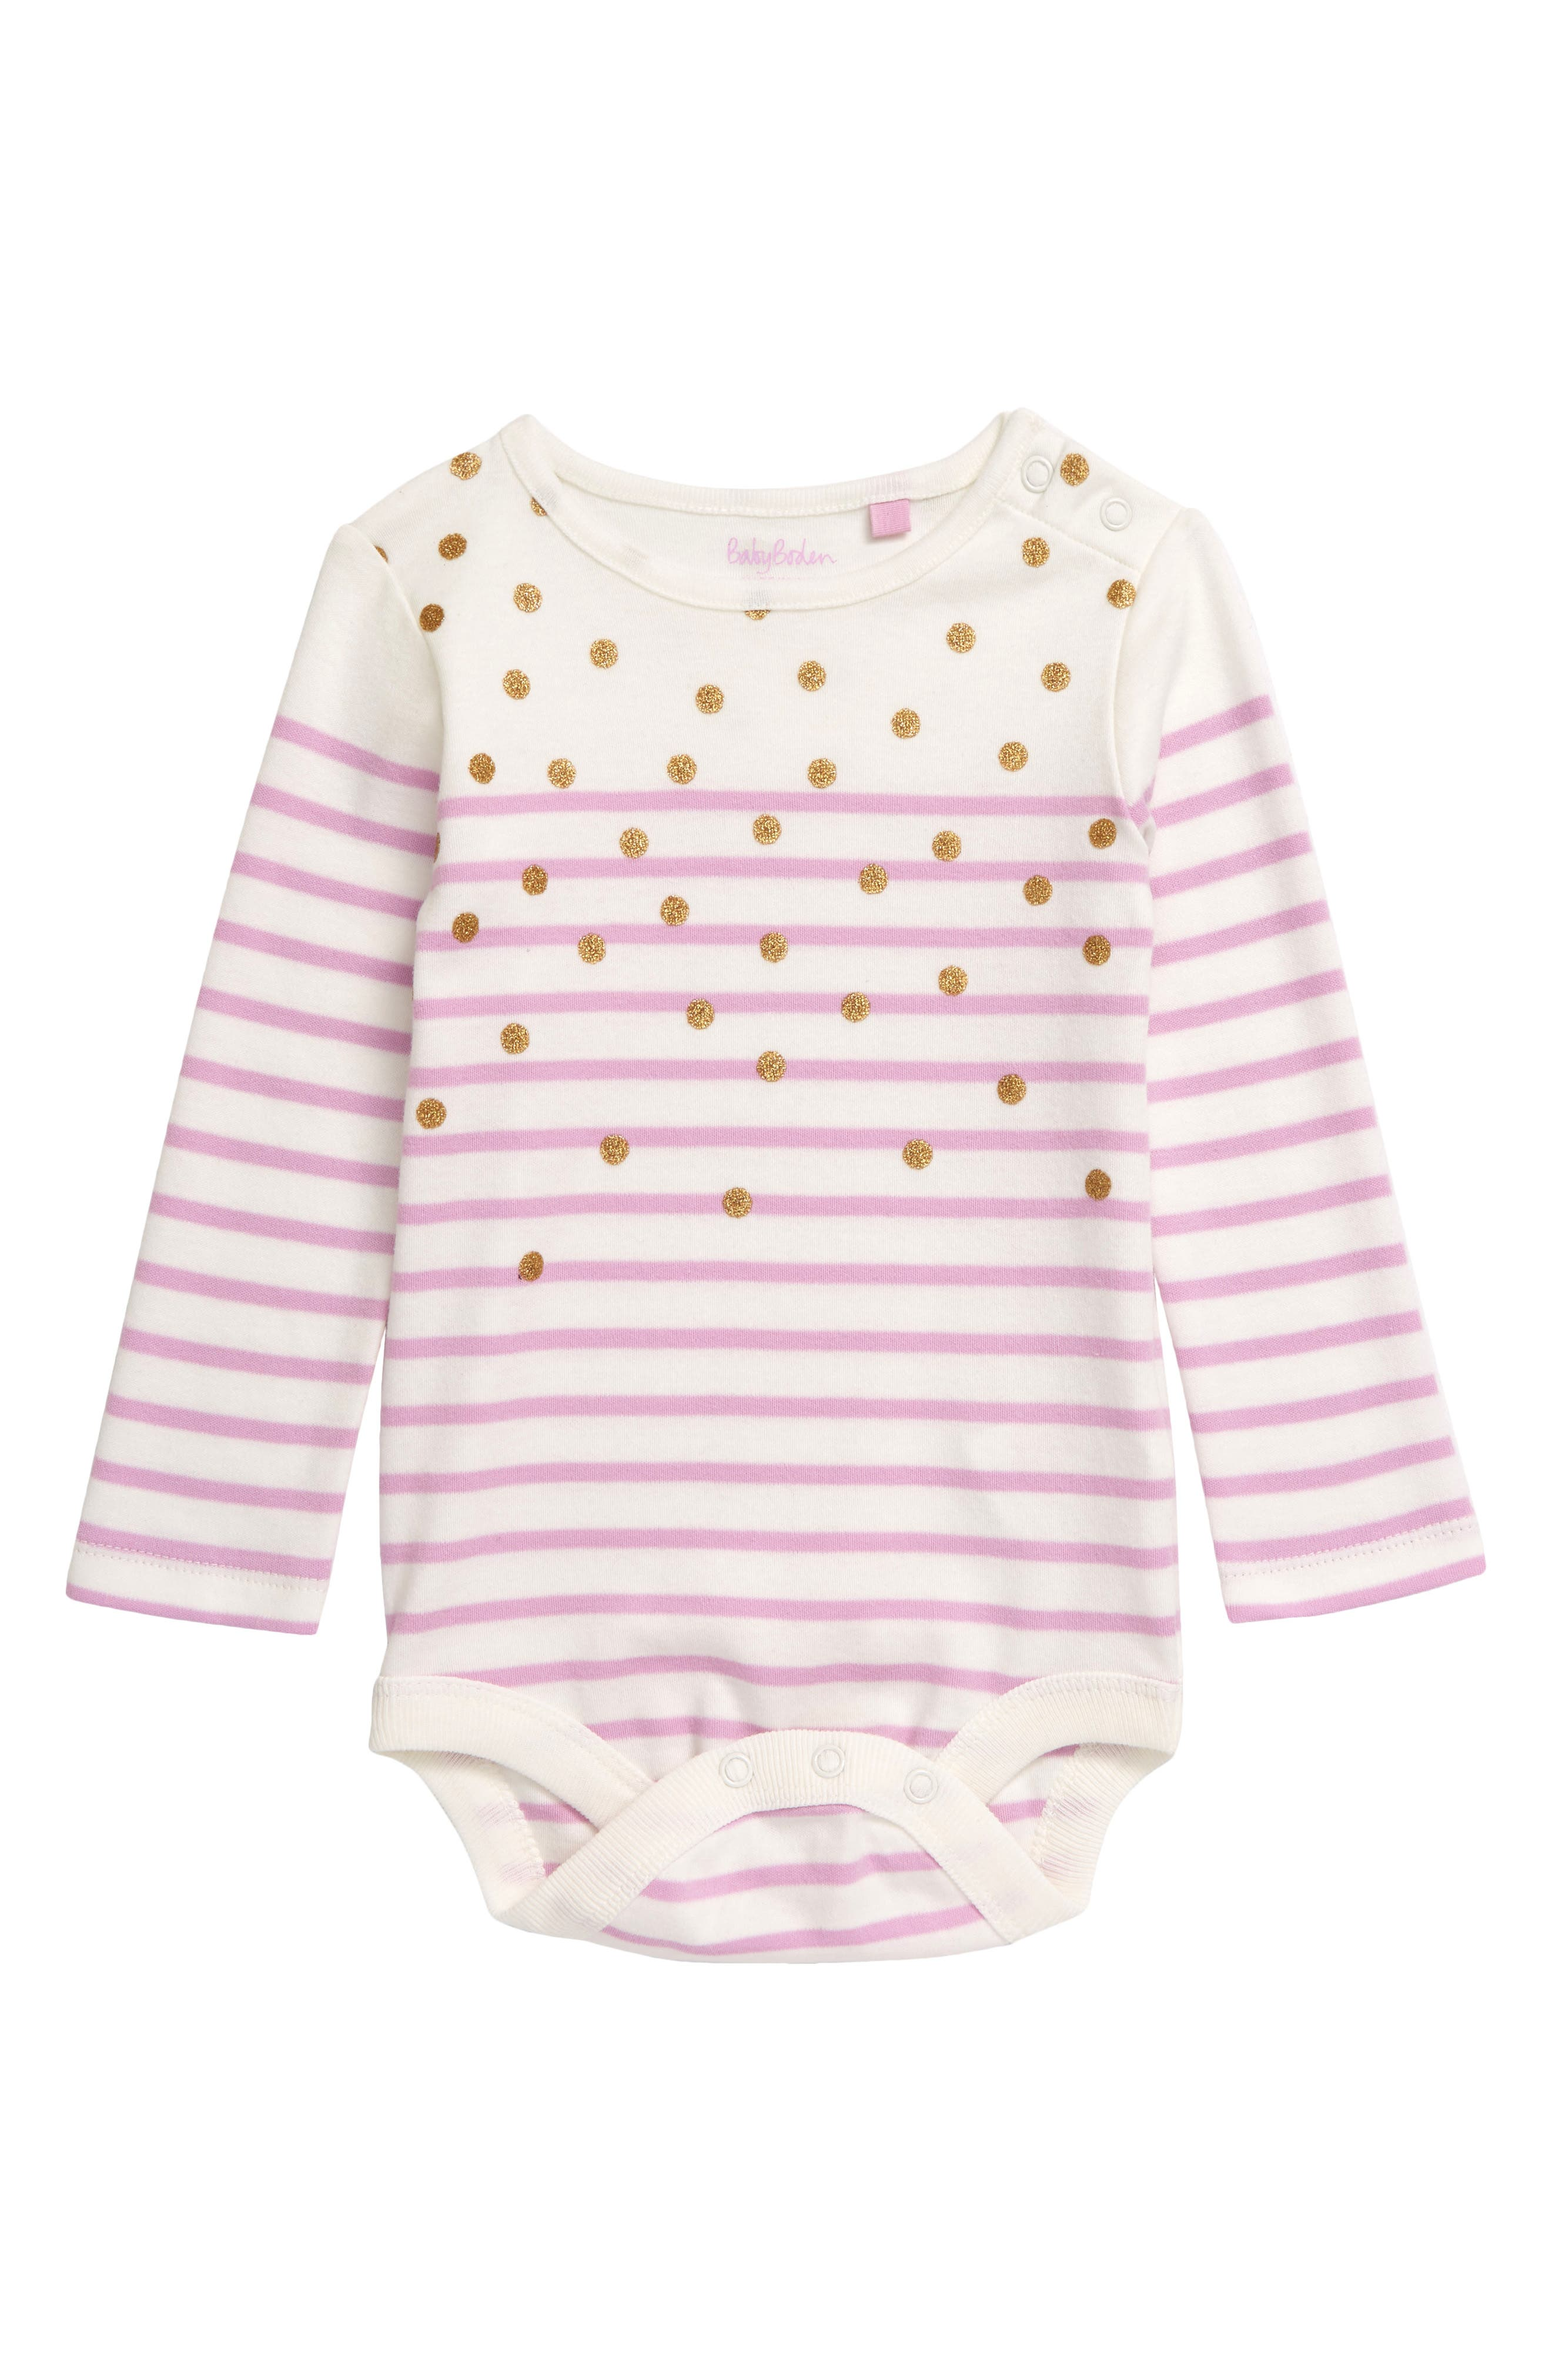 Stylish stripes and glittering polka dots pattern a too-cute long-sleeve bodysuit cut from pure cotton that\\\'s soft against baby\\\'s skin. Style Name: Mini Boden Colorful Breton Stripe Bodysuit (Baby). Style Number: 6096418. Available in stores.